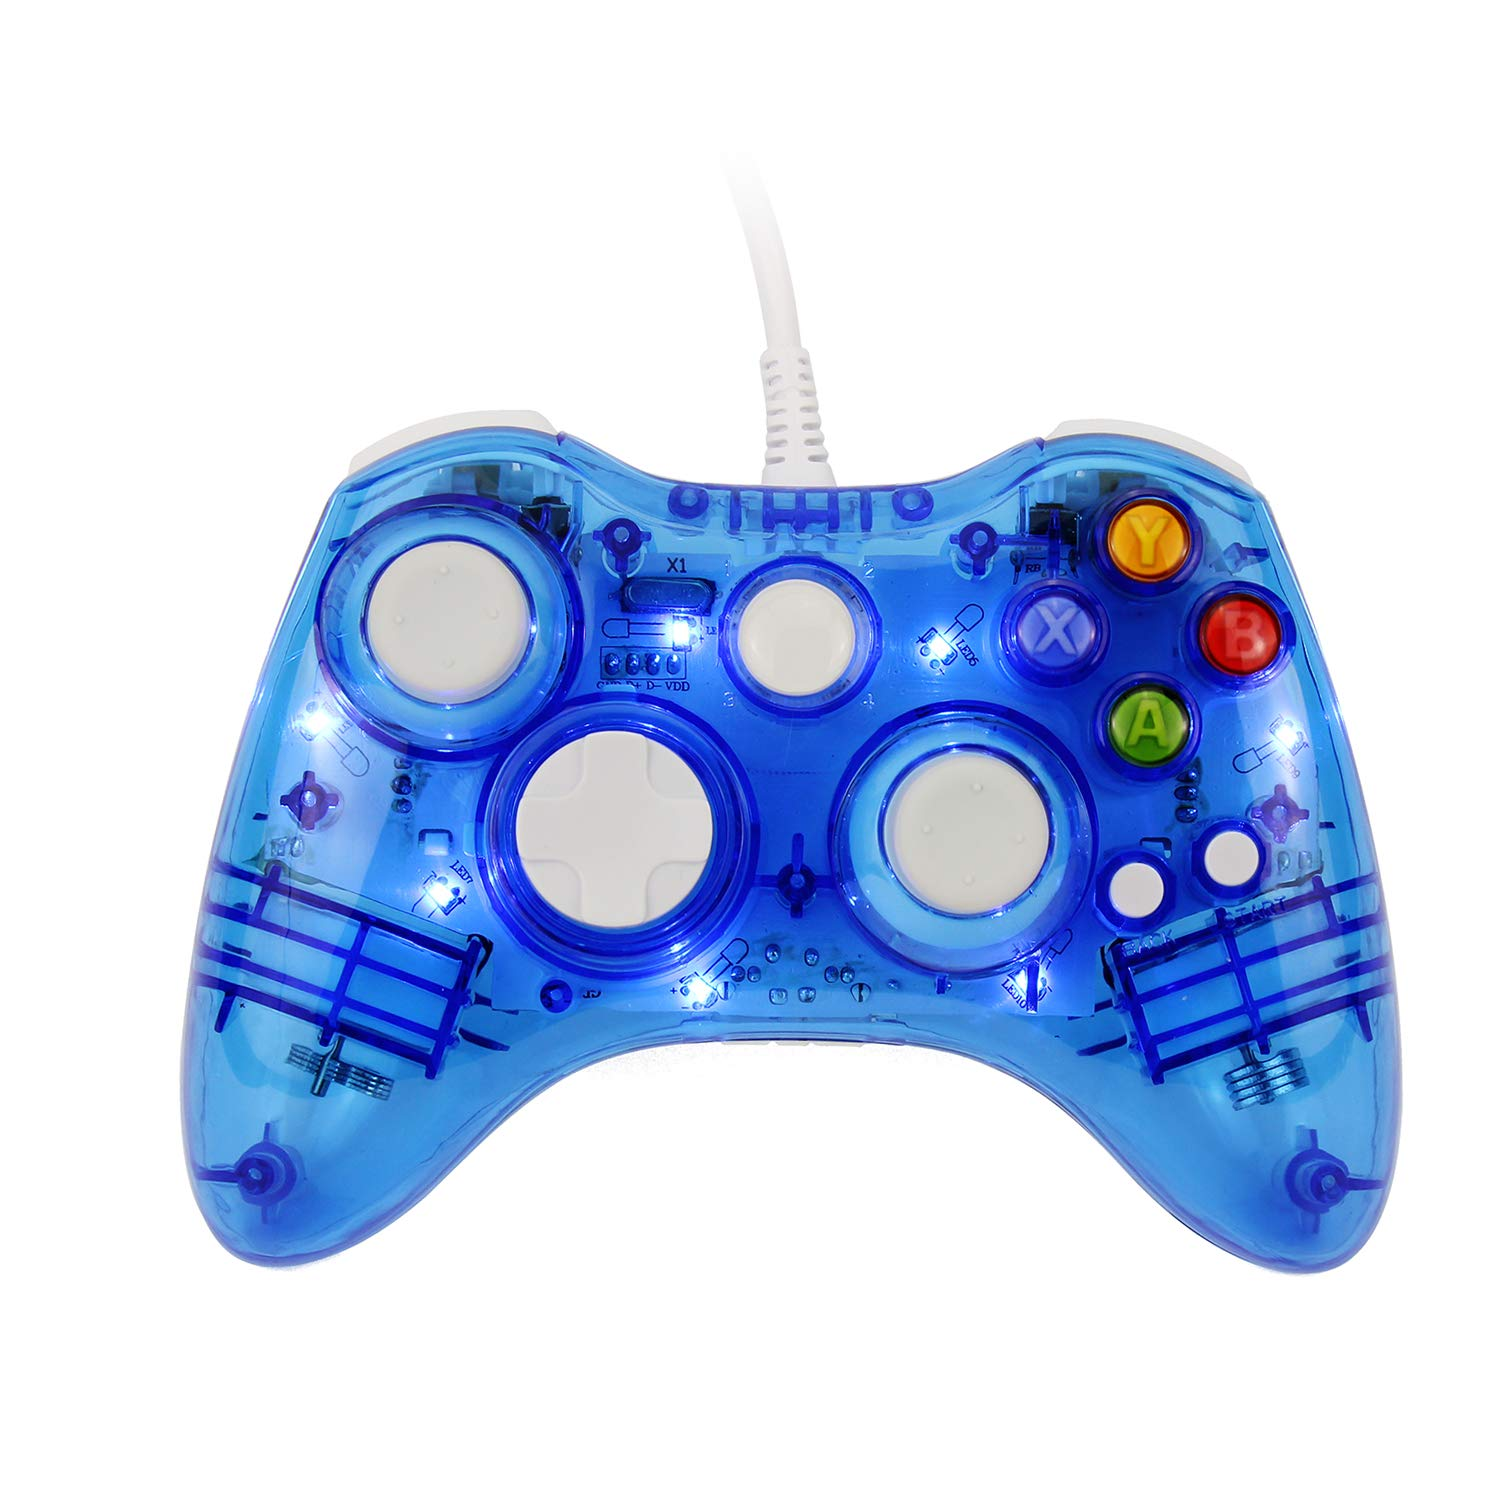 Afterglow PC Controller, Etpark Trasparennt Gamepad 7 LED Lights Support Xbox 360 PC(Windows XP/7/8/10)(Blue)